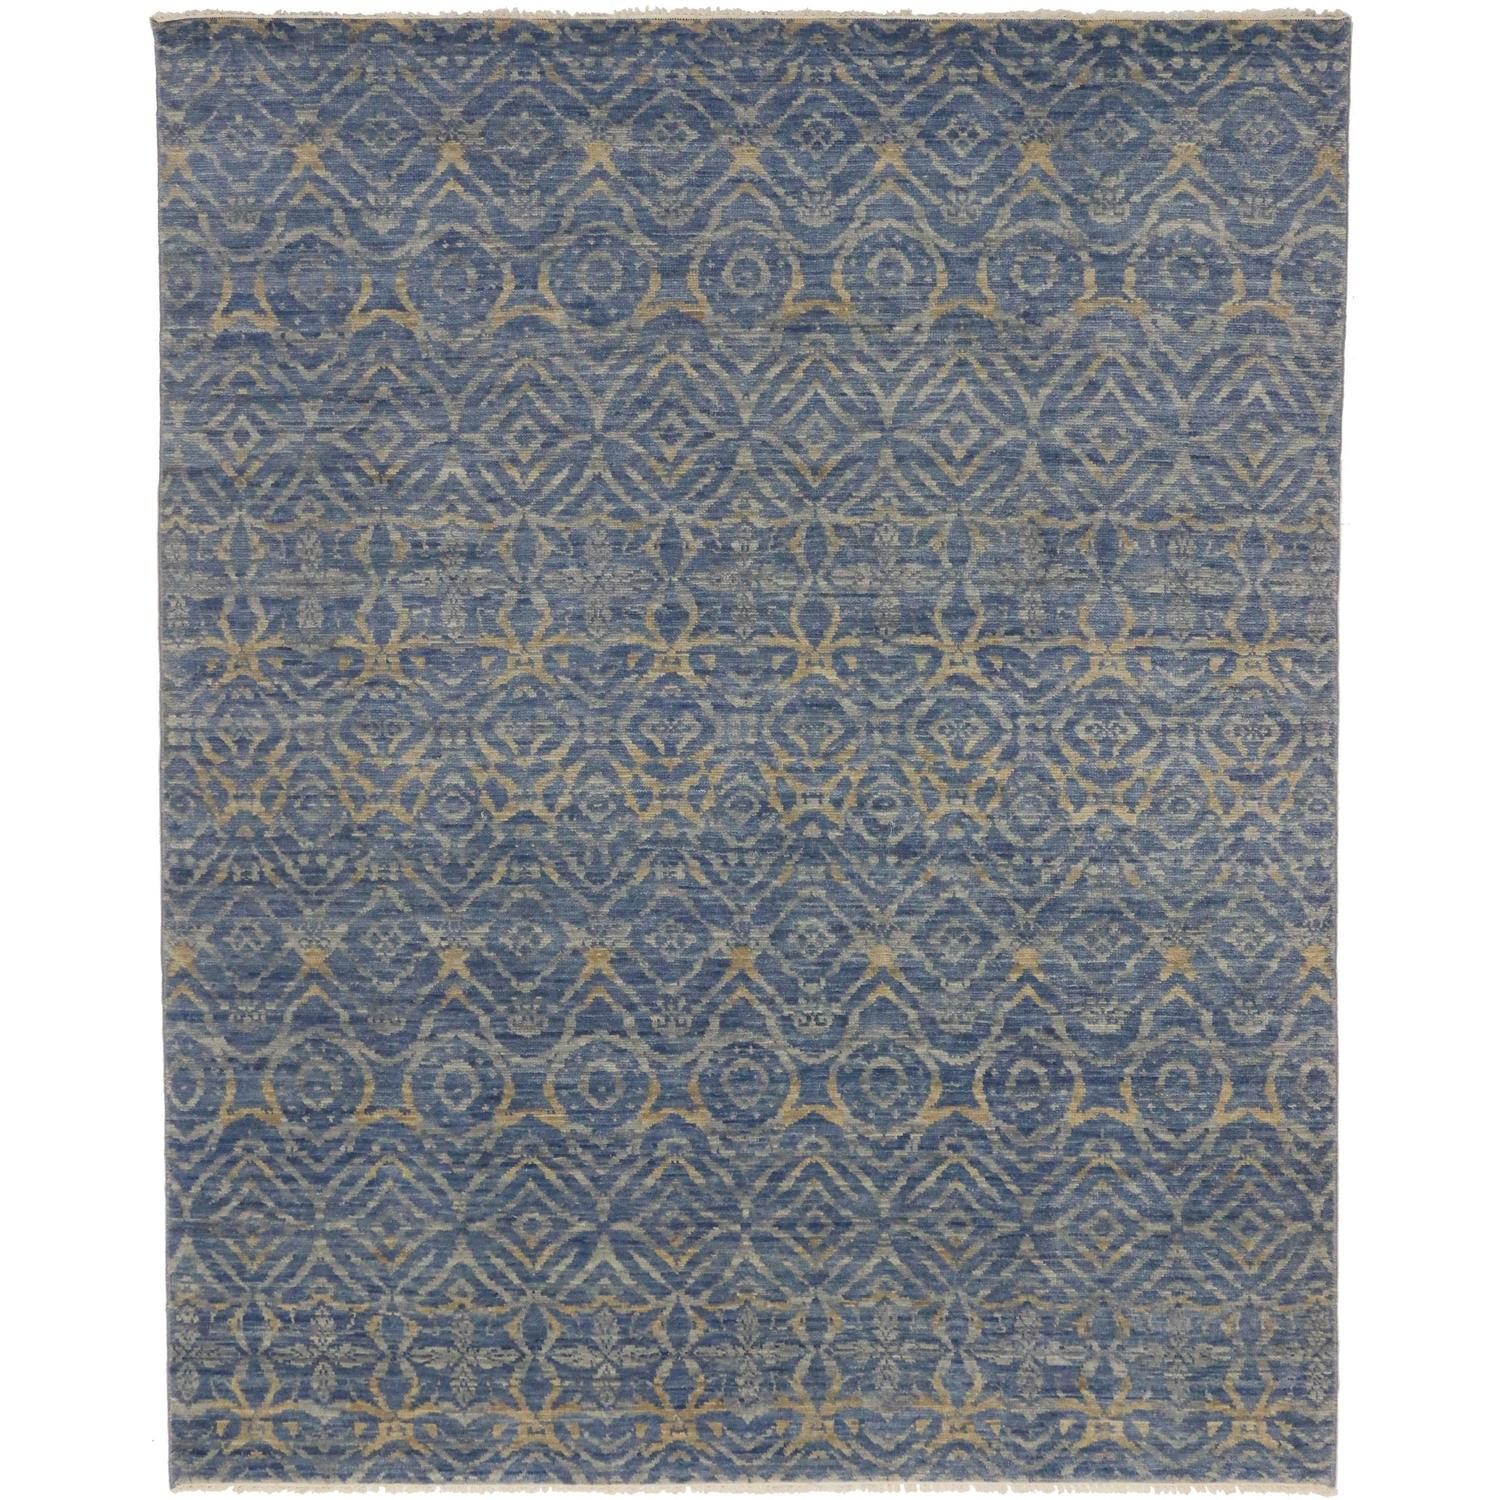 Area Rugs From India: Transitional Area Rug In 'Morjim Beach' Blue With Modern